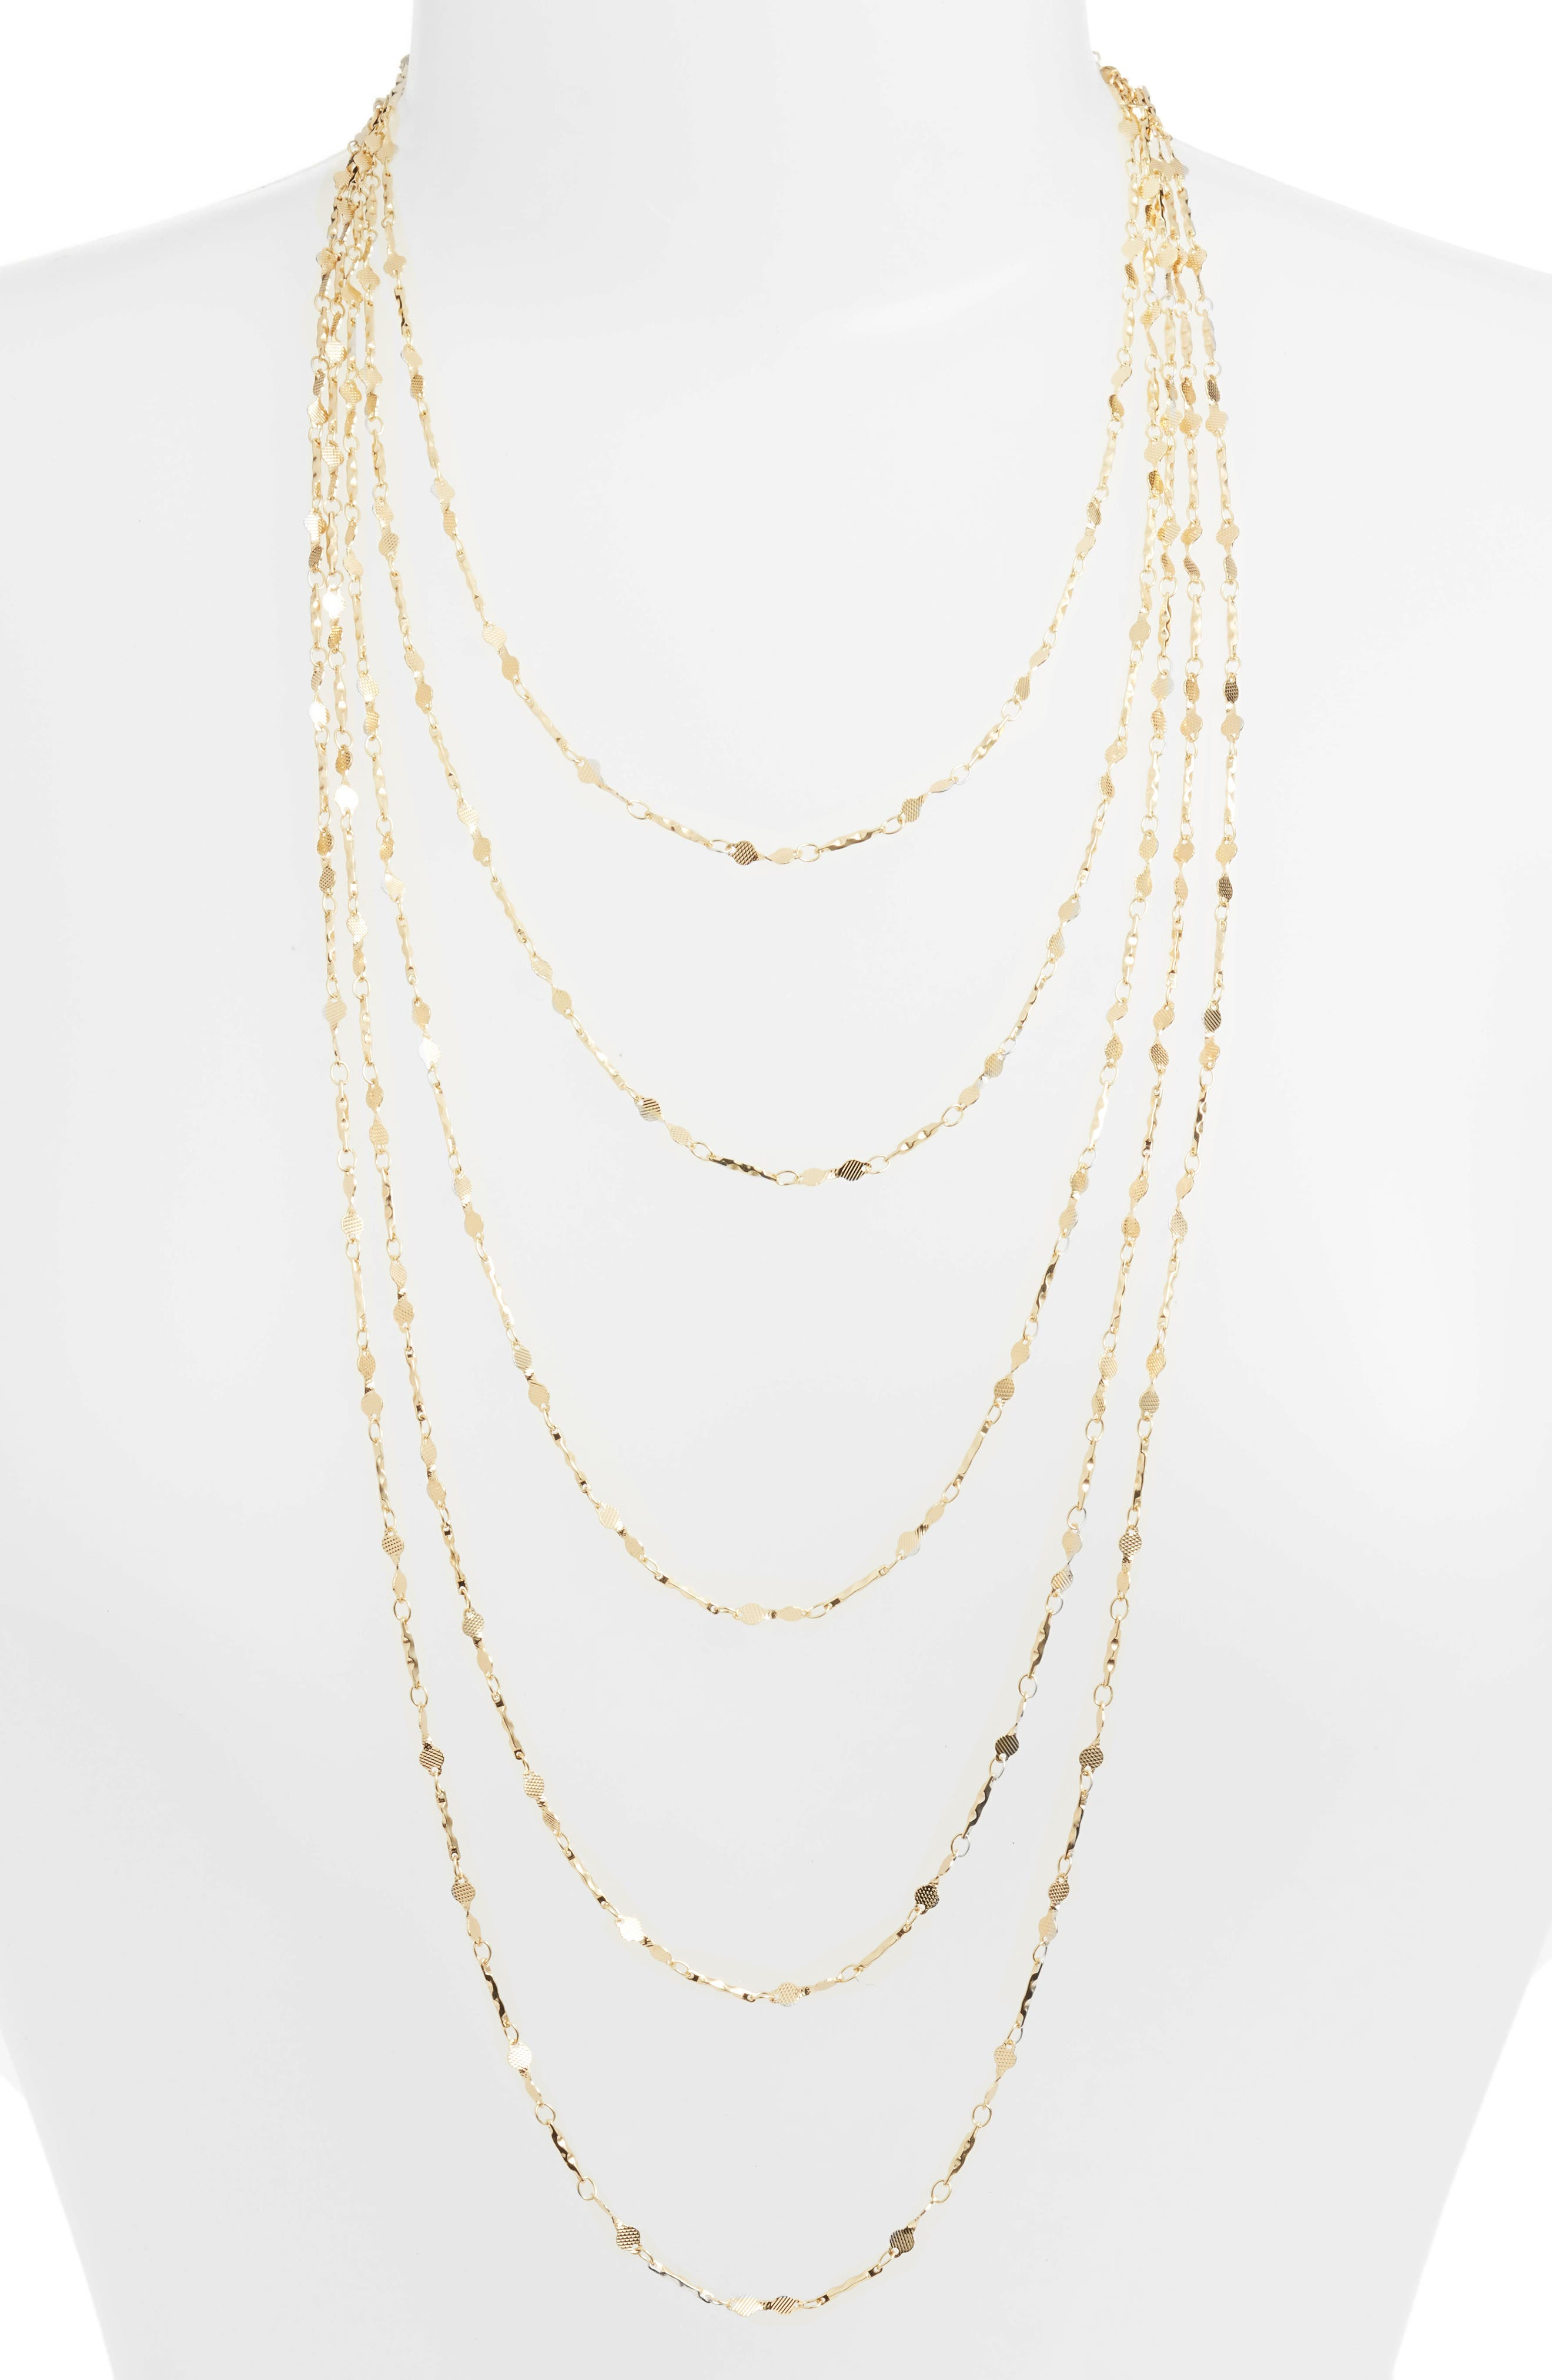 5-STRAND NECKLACE